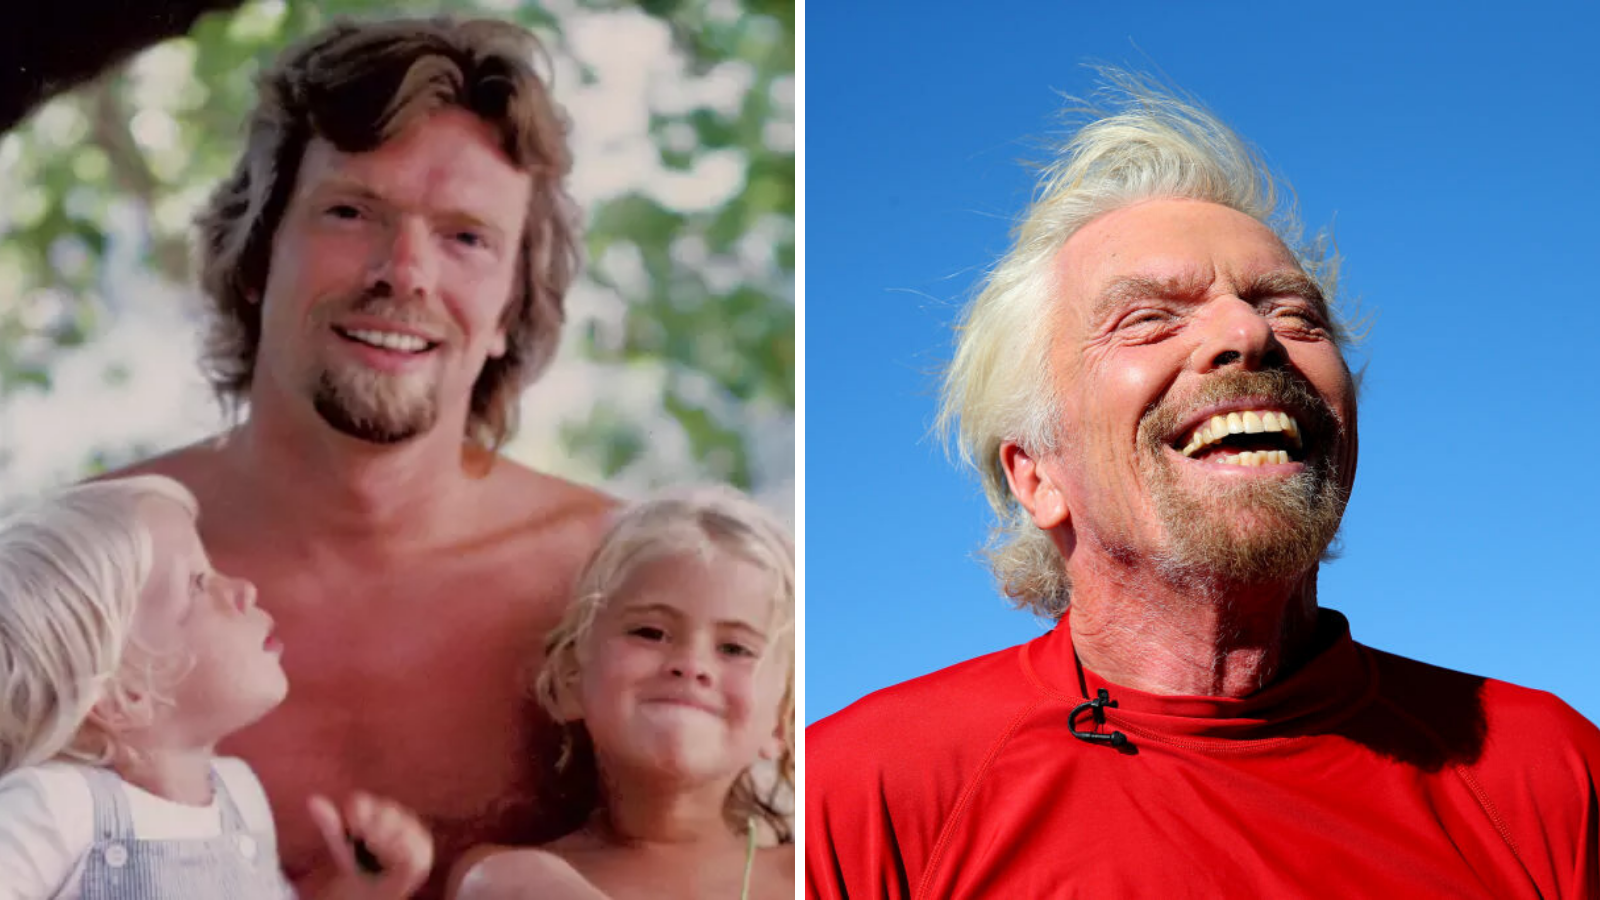 Starting a business is like raising children: Richard Branson - Yahoo Finance Australia